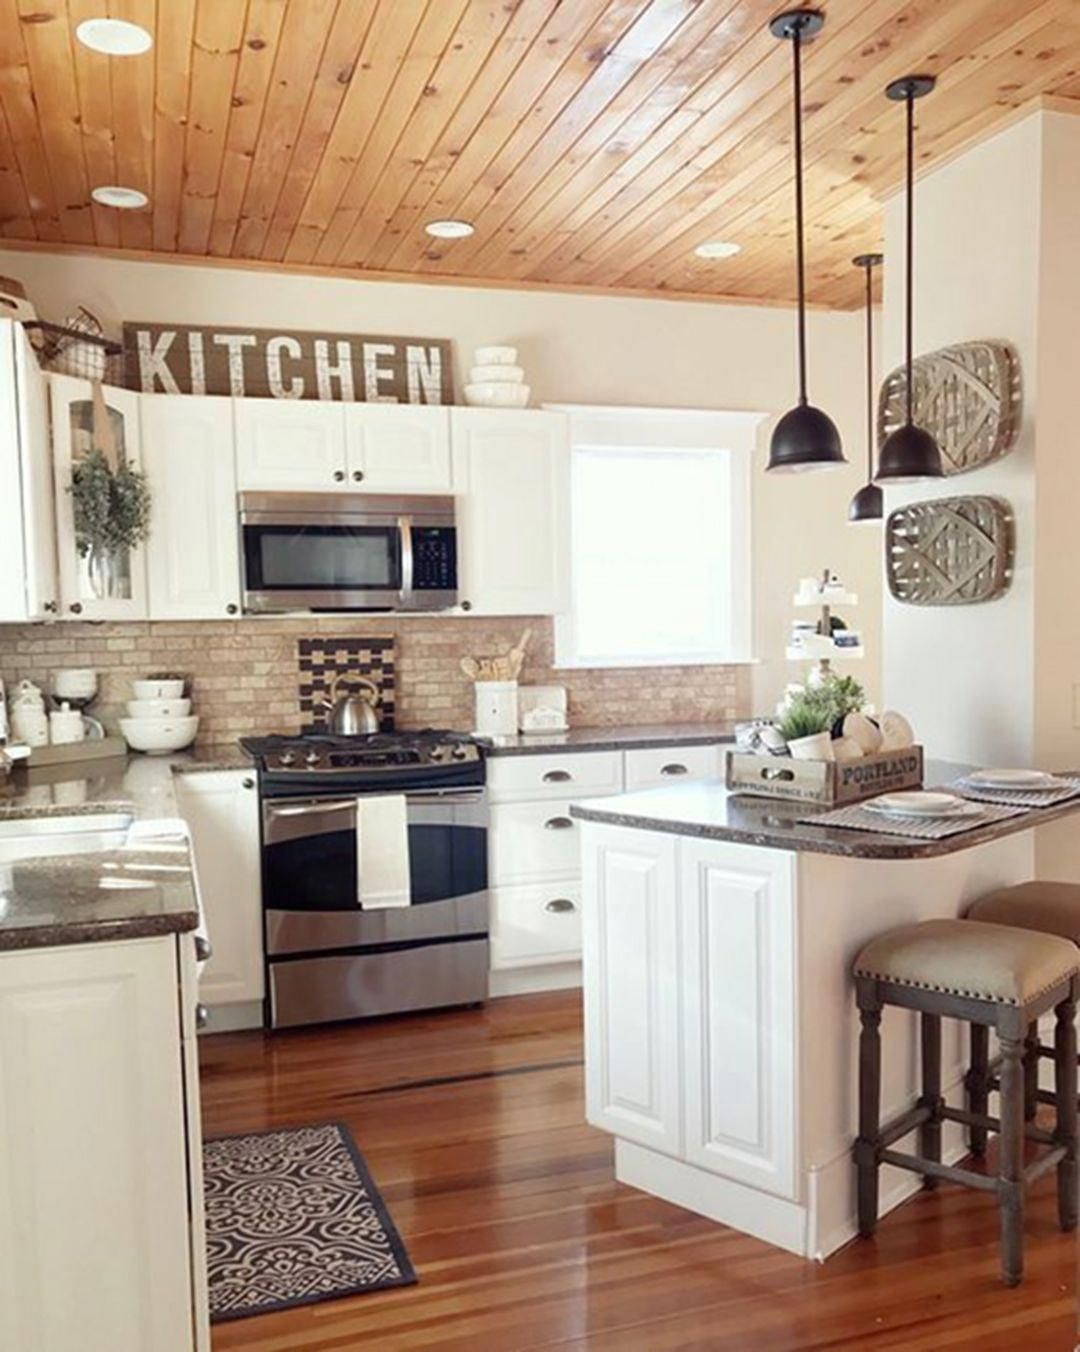 46 chic farmhouse kitchen design and decorating ideas for fun cooking countryhomedecoration on farmhouse kitchen small id=46182